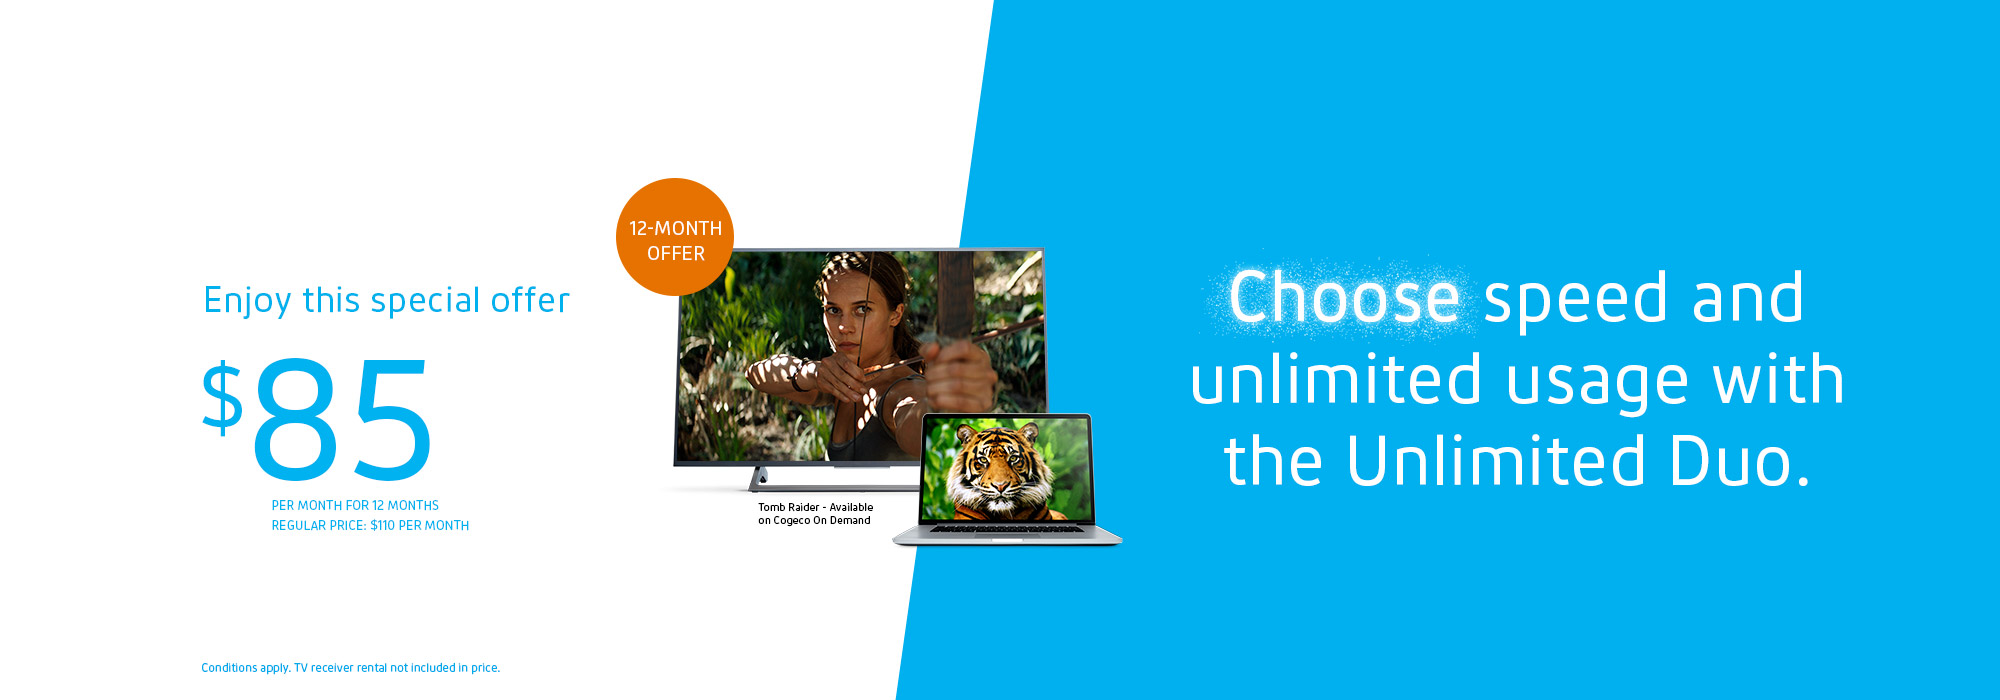 Get unlimited Internet and TV for only: $85/MO. FOR 12 MONTHS Regular price: $110/MO.